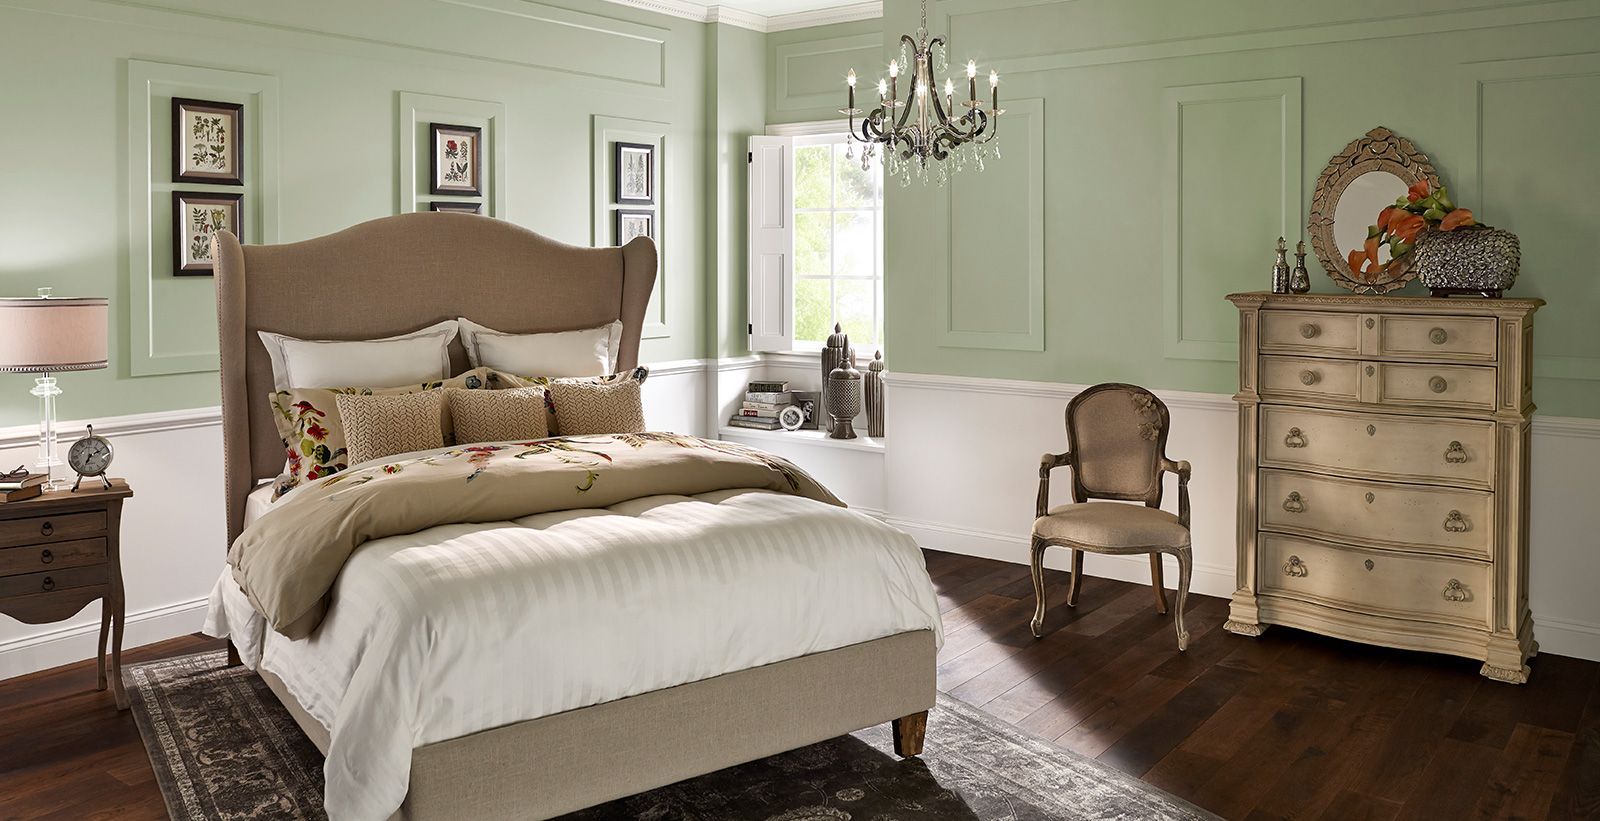 Zen Bedroom inspiration from BEHR. Paint colors used are